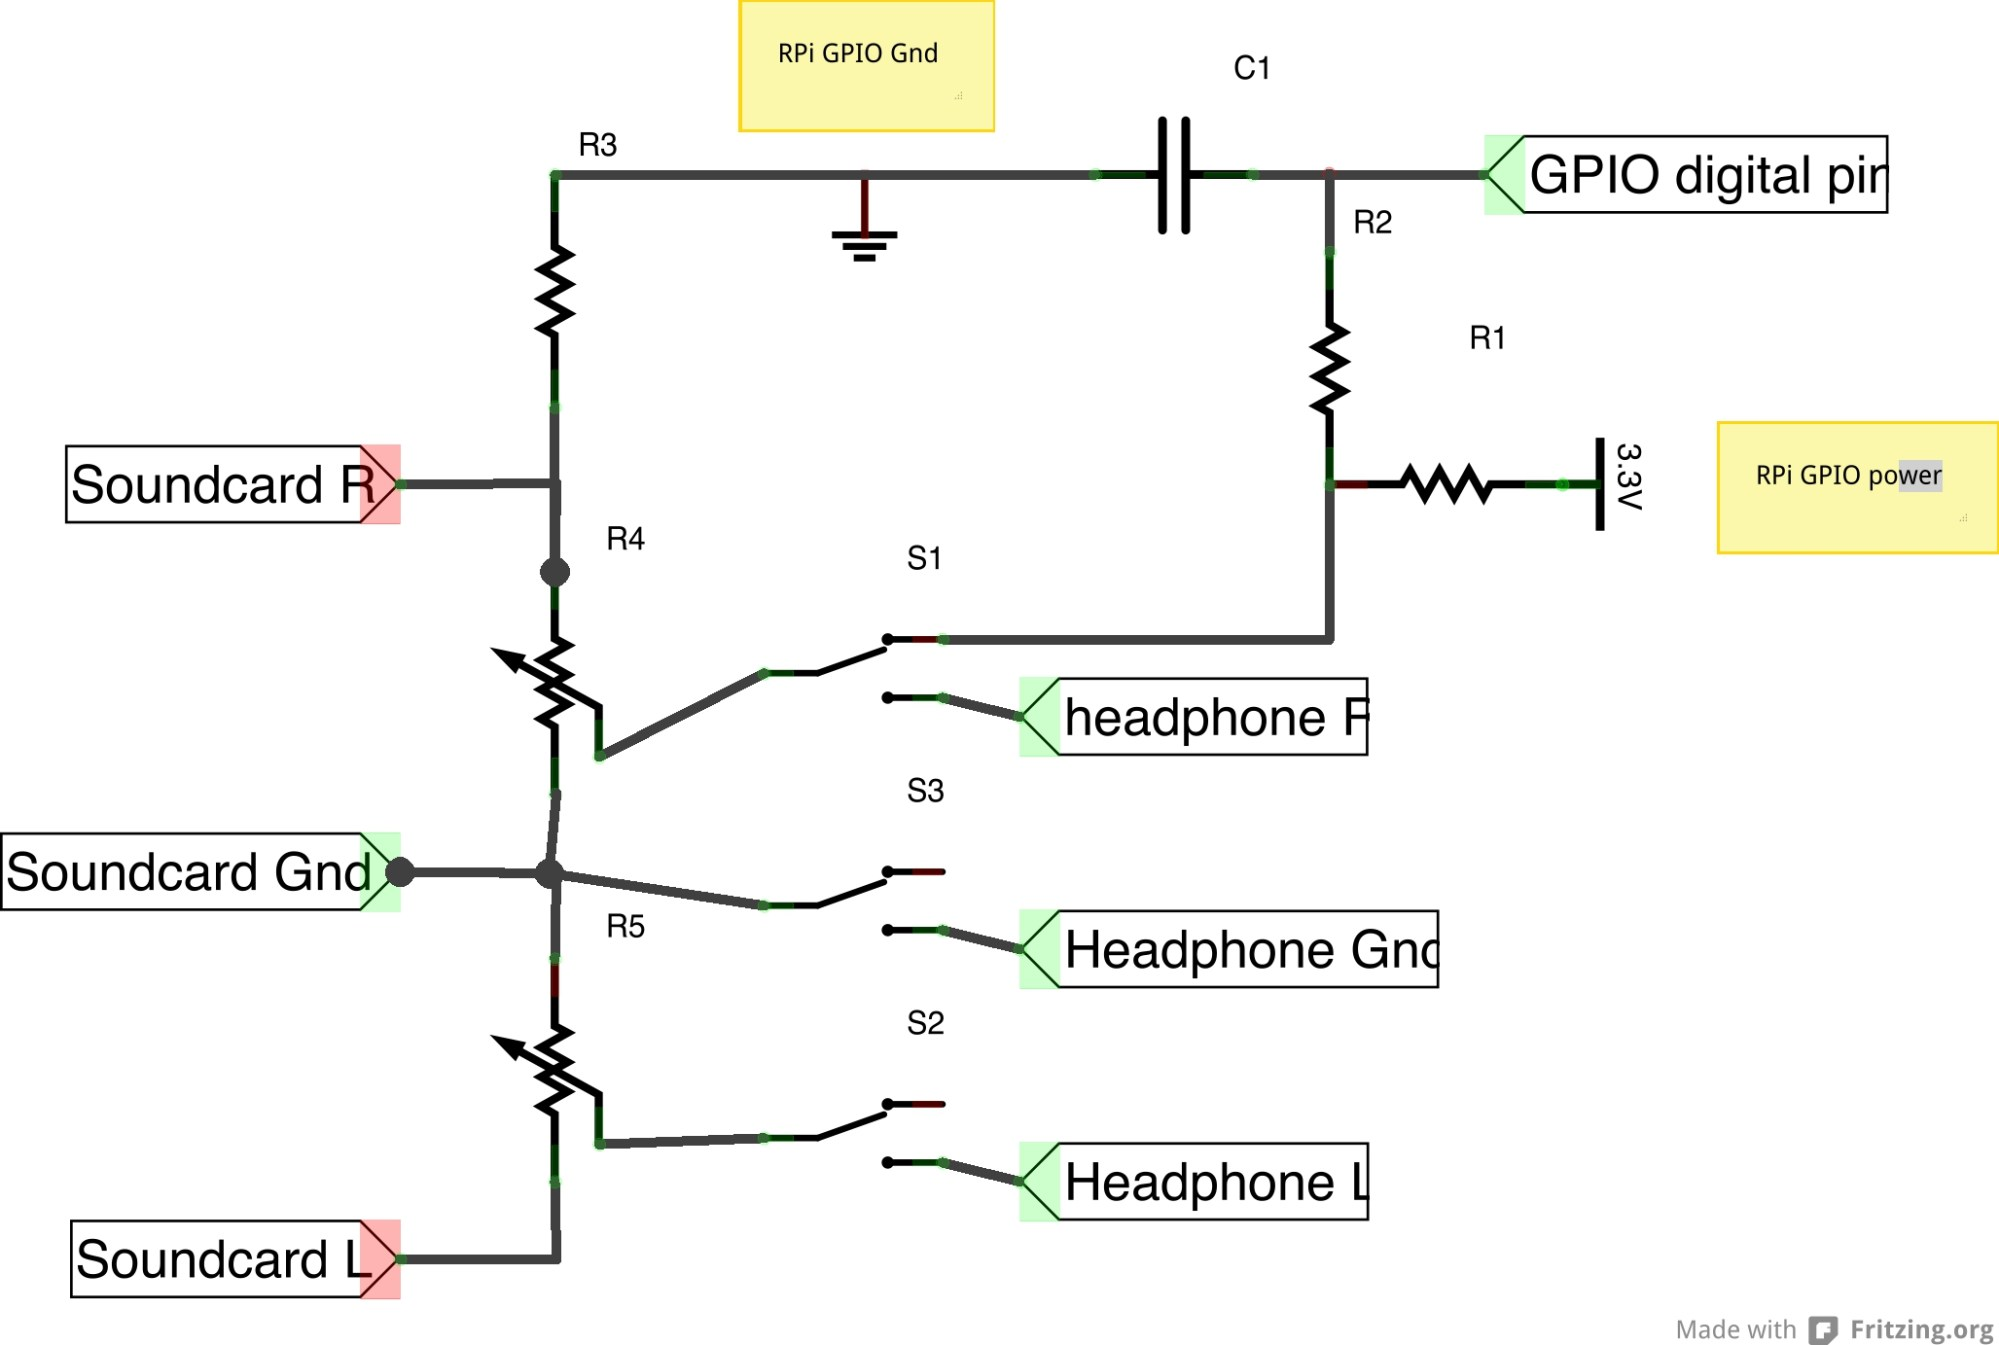 hight resolution of how can i use the rpi gpio to make a headphone sensing 3 5mm audio jack diagram audio jack connector diagram